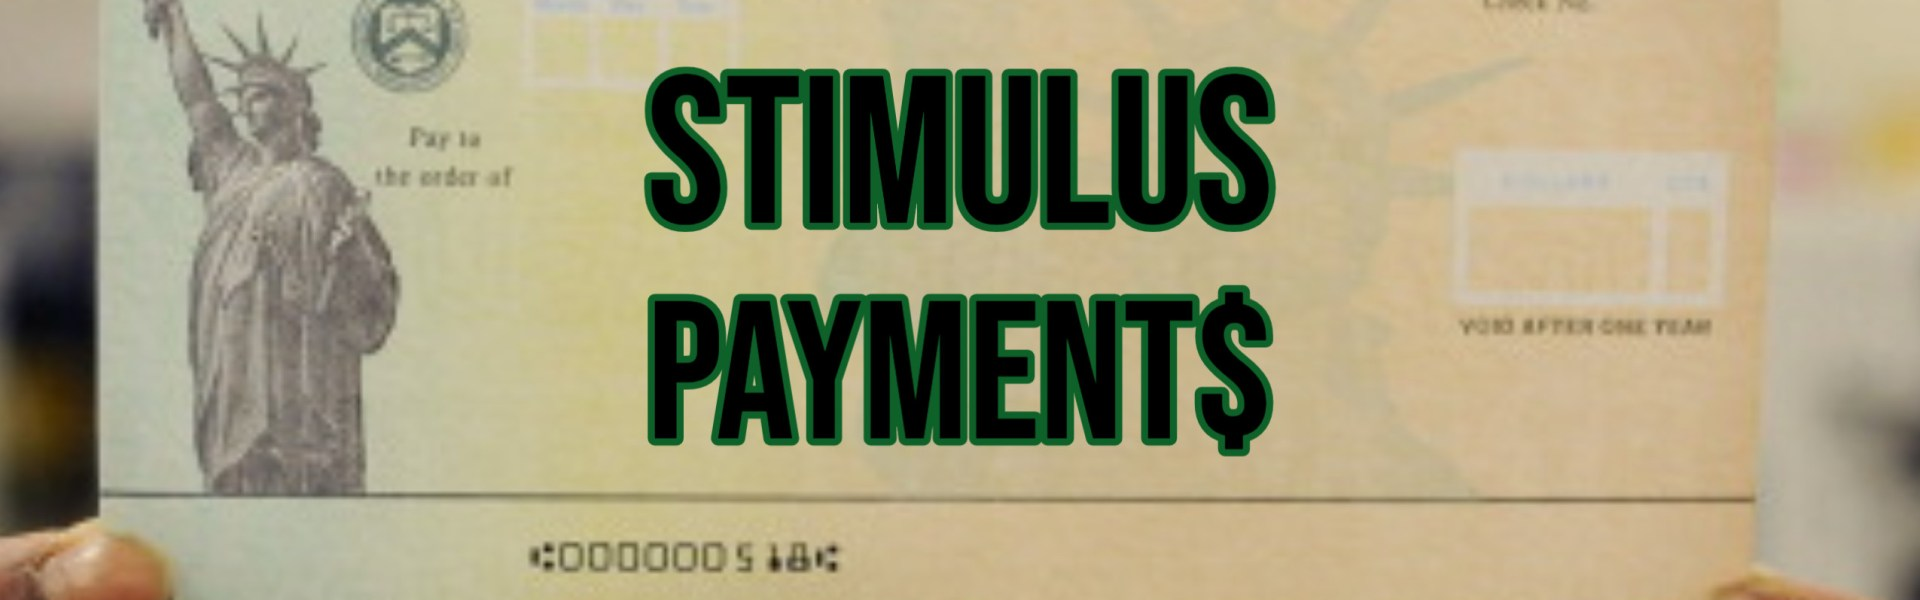 Stimulus Payment from IRS